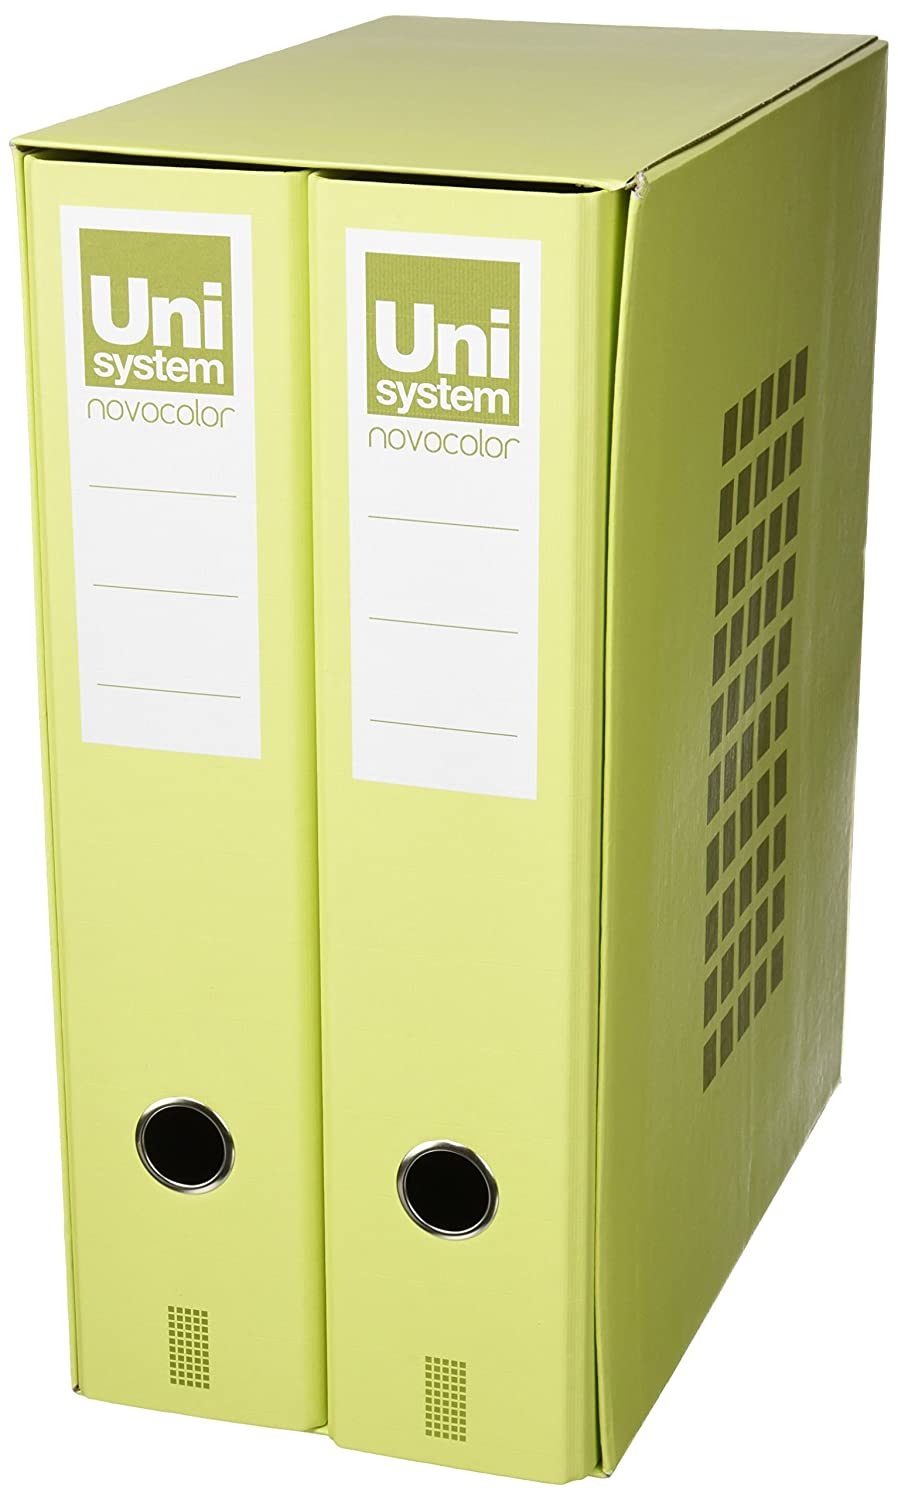 Unisystem 8412742777966 - Box de 2 archivadores folio, color amarillo: Amazon.es: Oficina y papelería